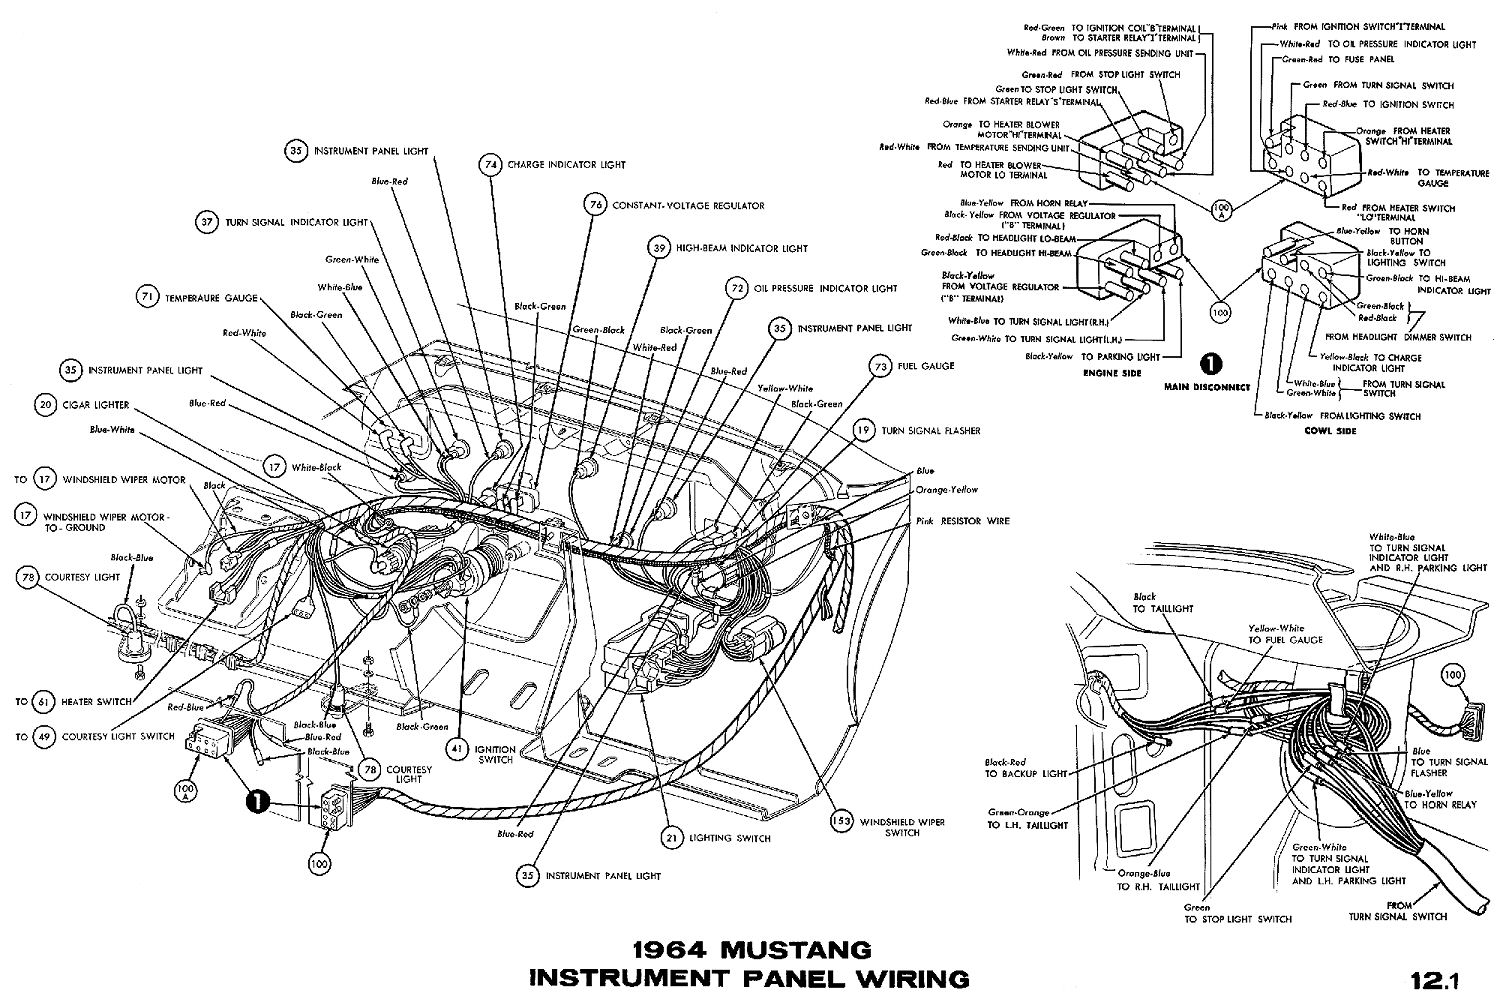 1964 Mustang Wiring Diagrams on 1956 chevy wiring diagram